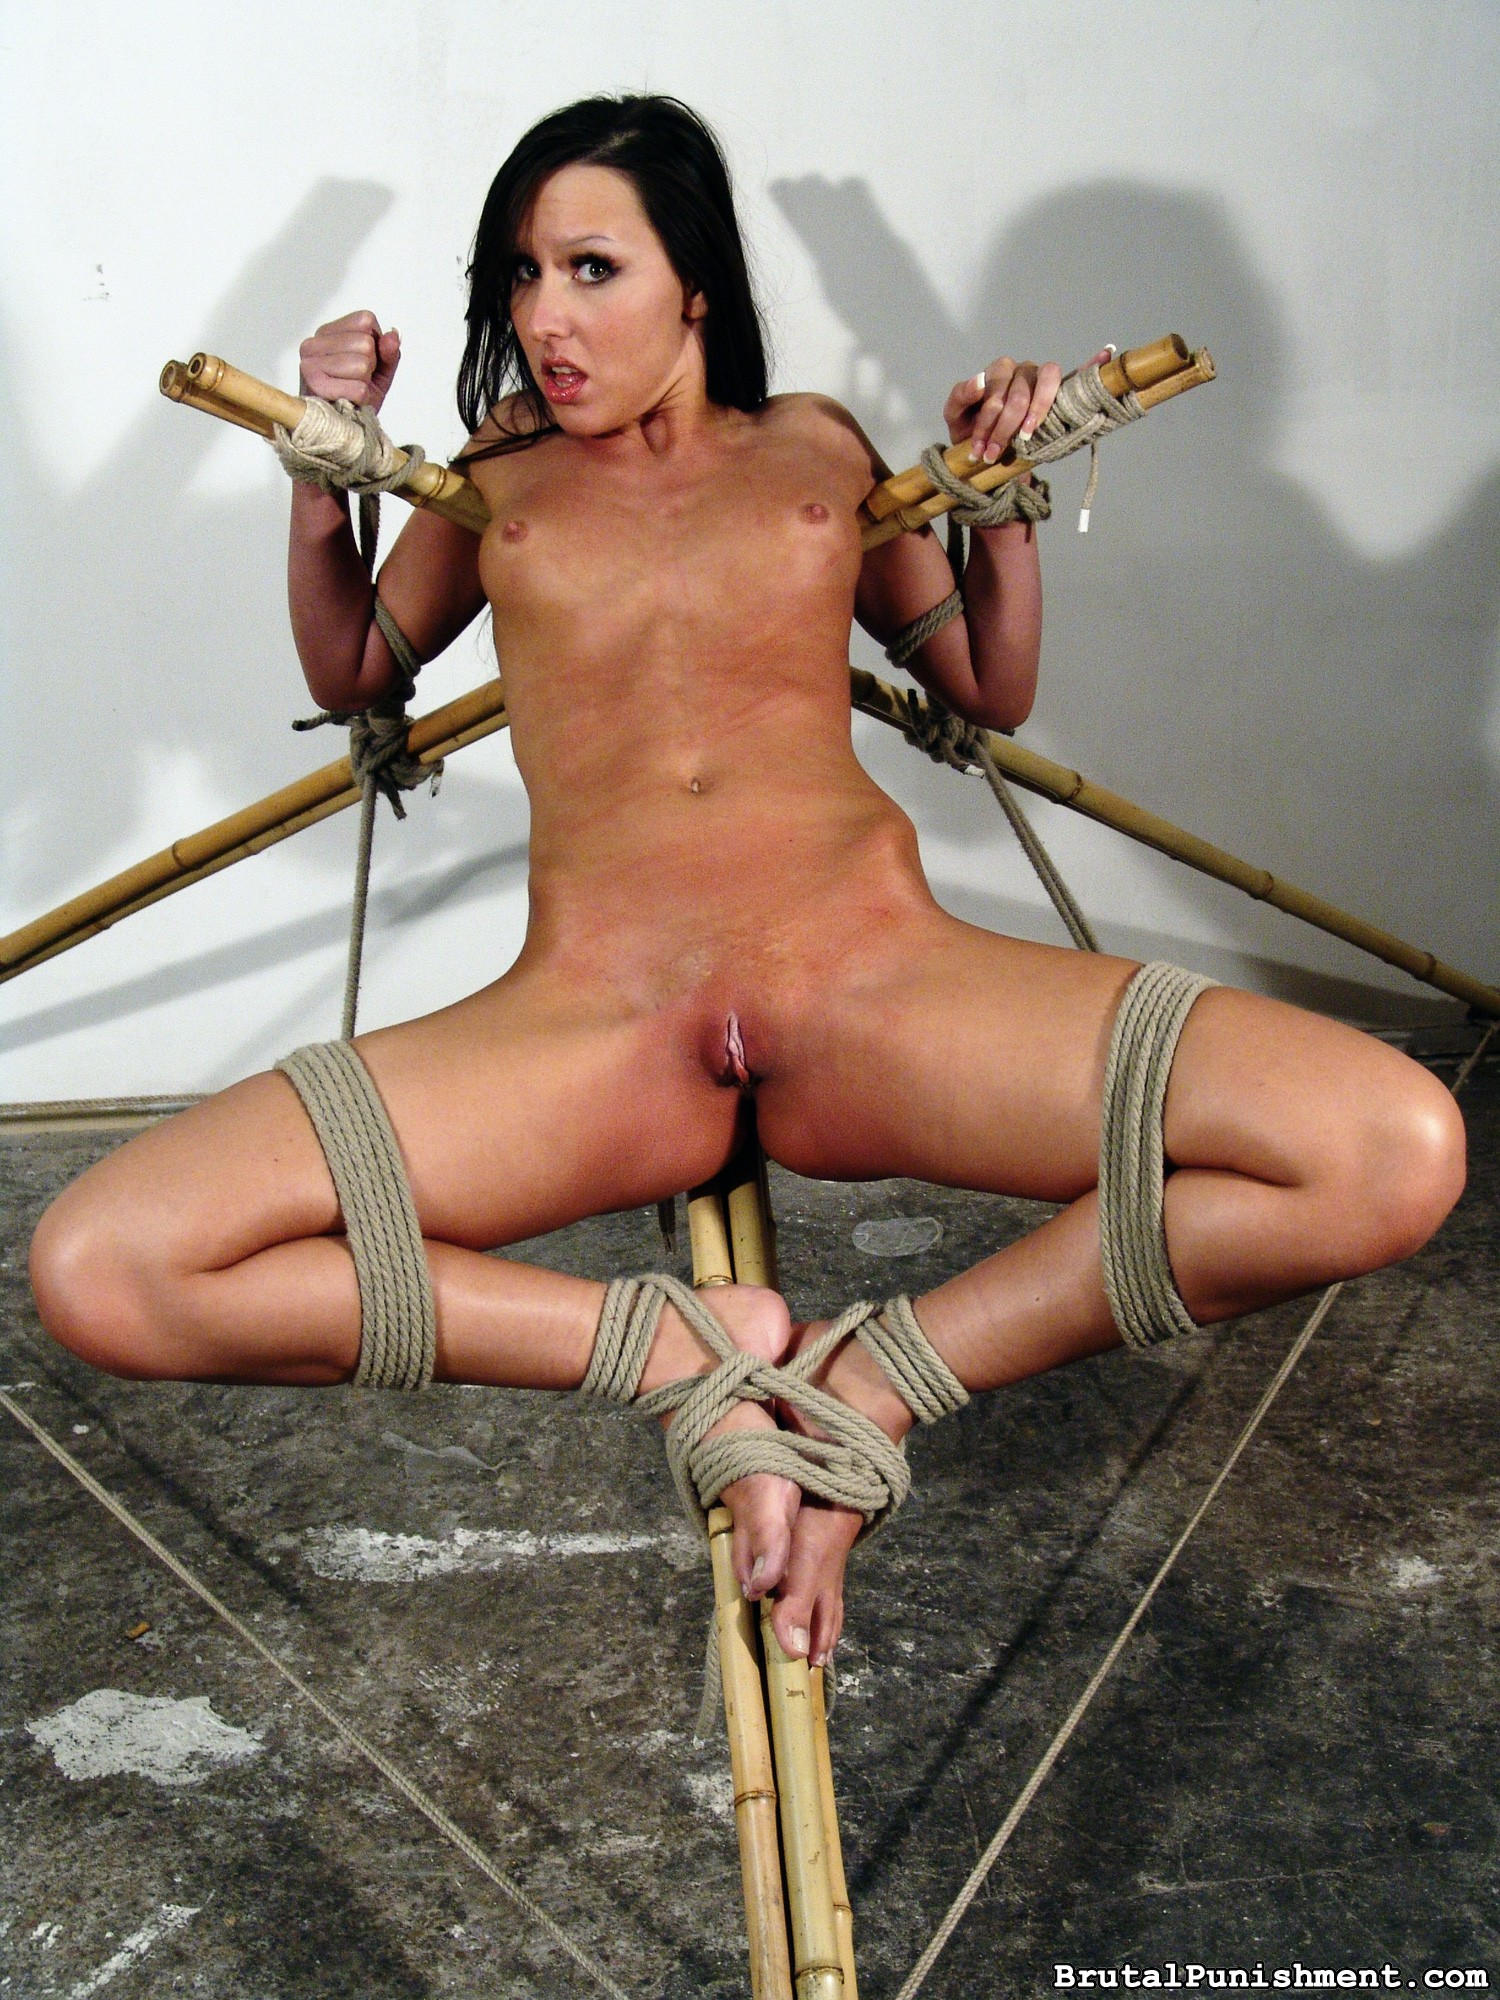 horny pain slut nicole endures another bondage session » brutal